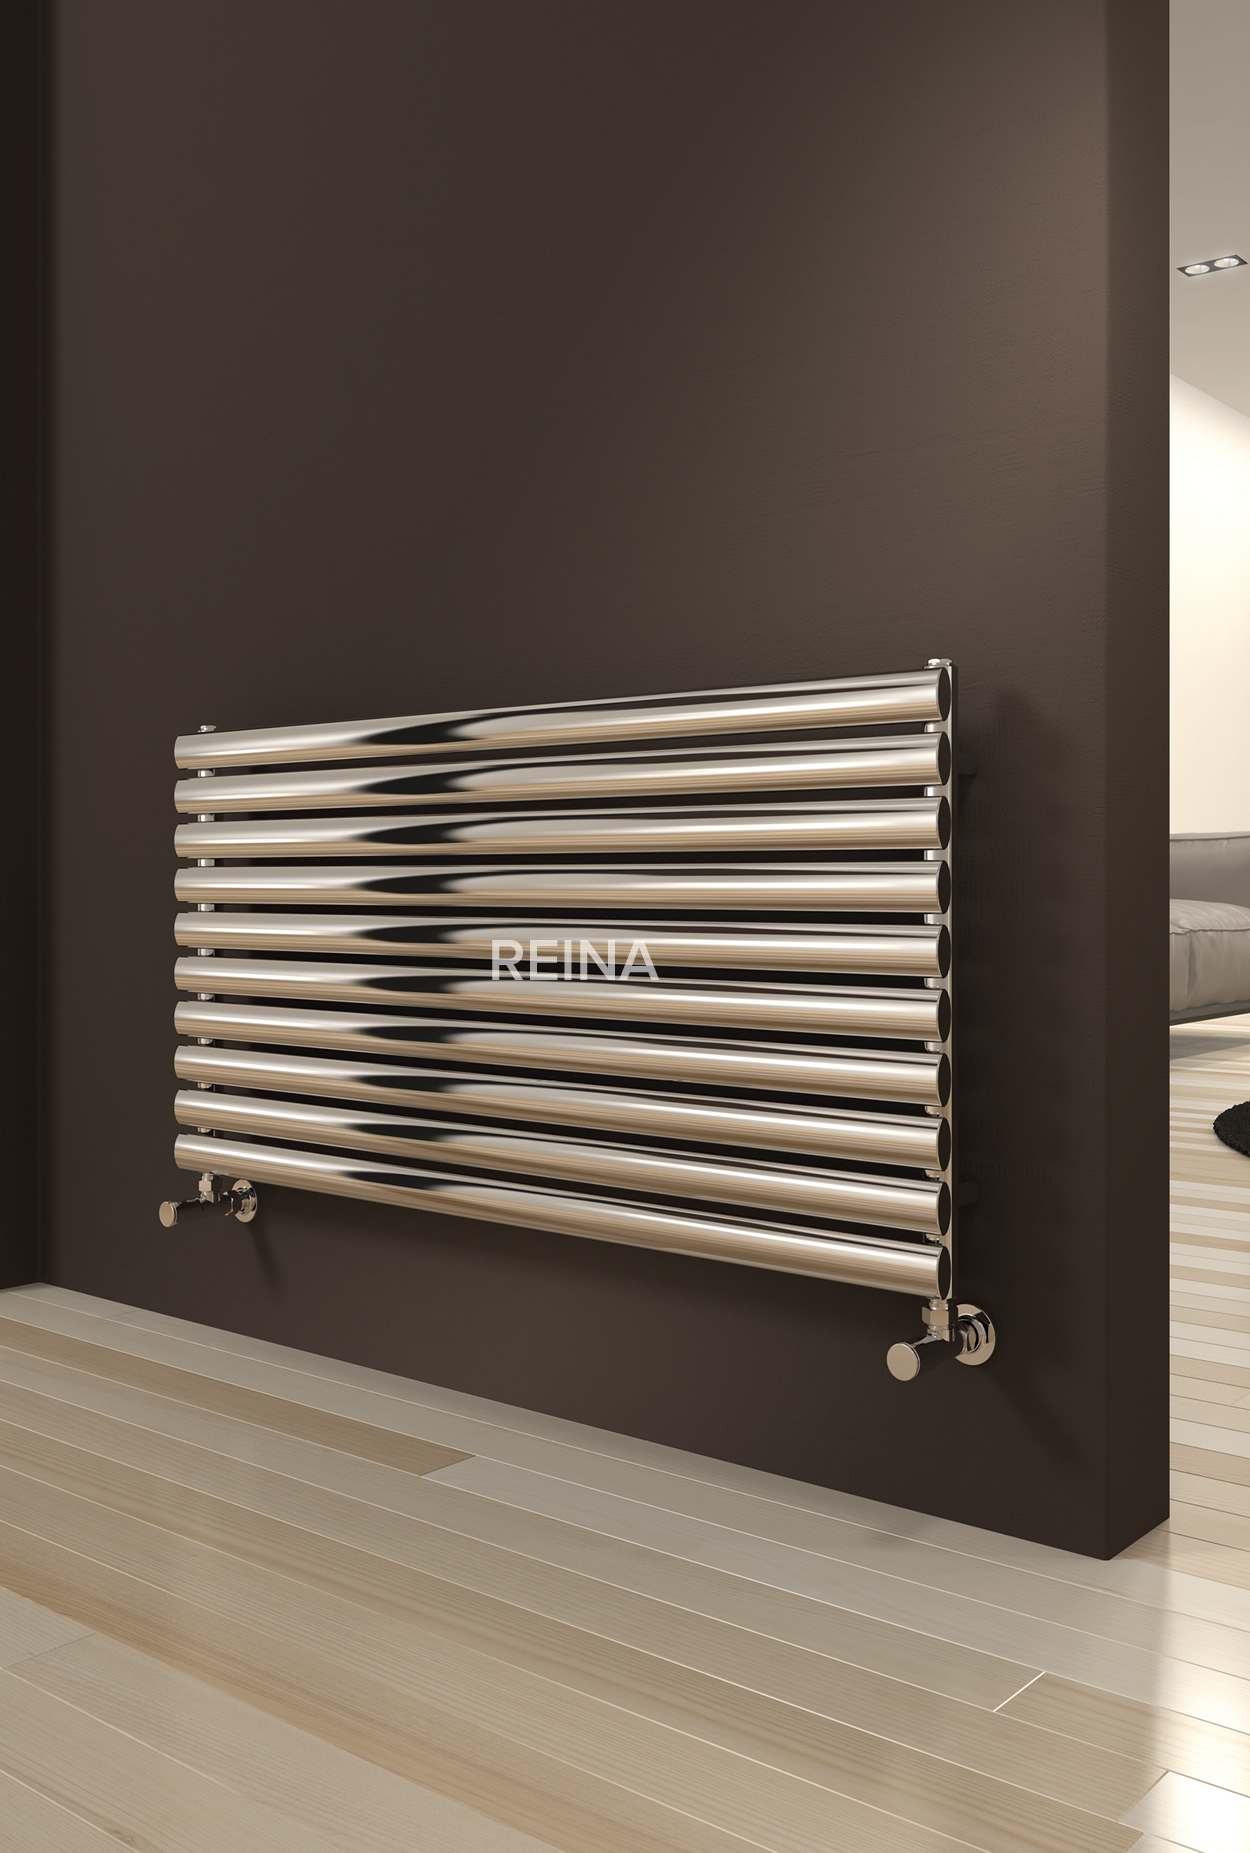 Reina Artena Horizontal Single Panel Radiator Stainless